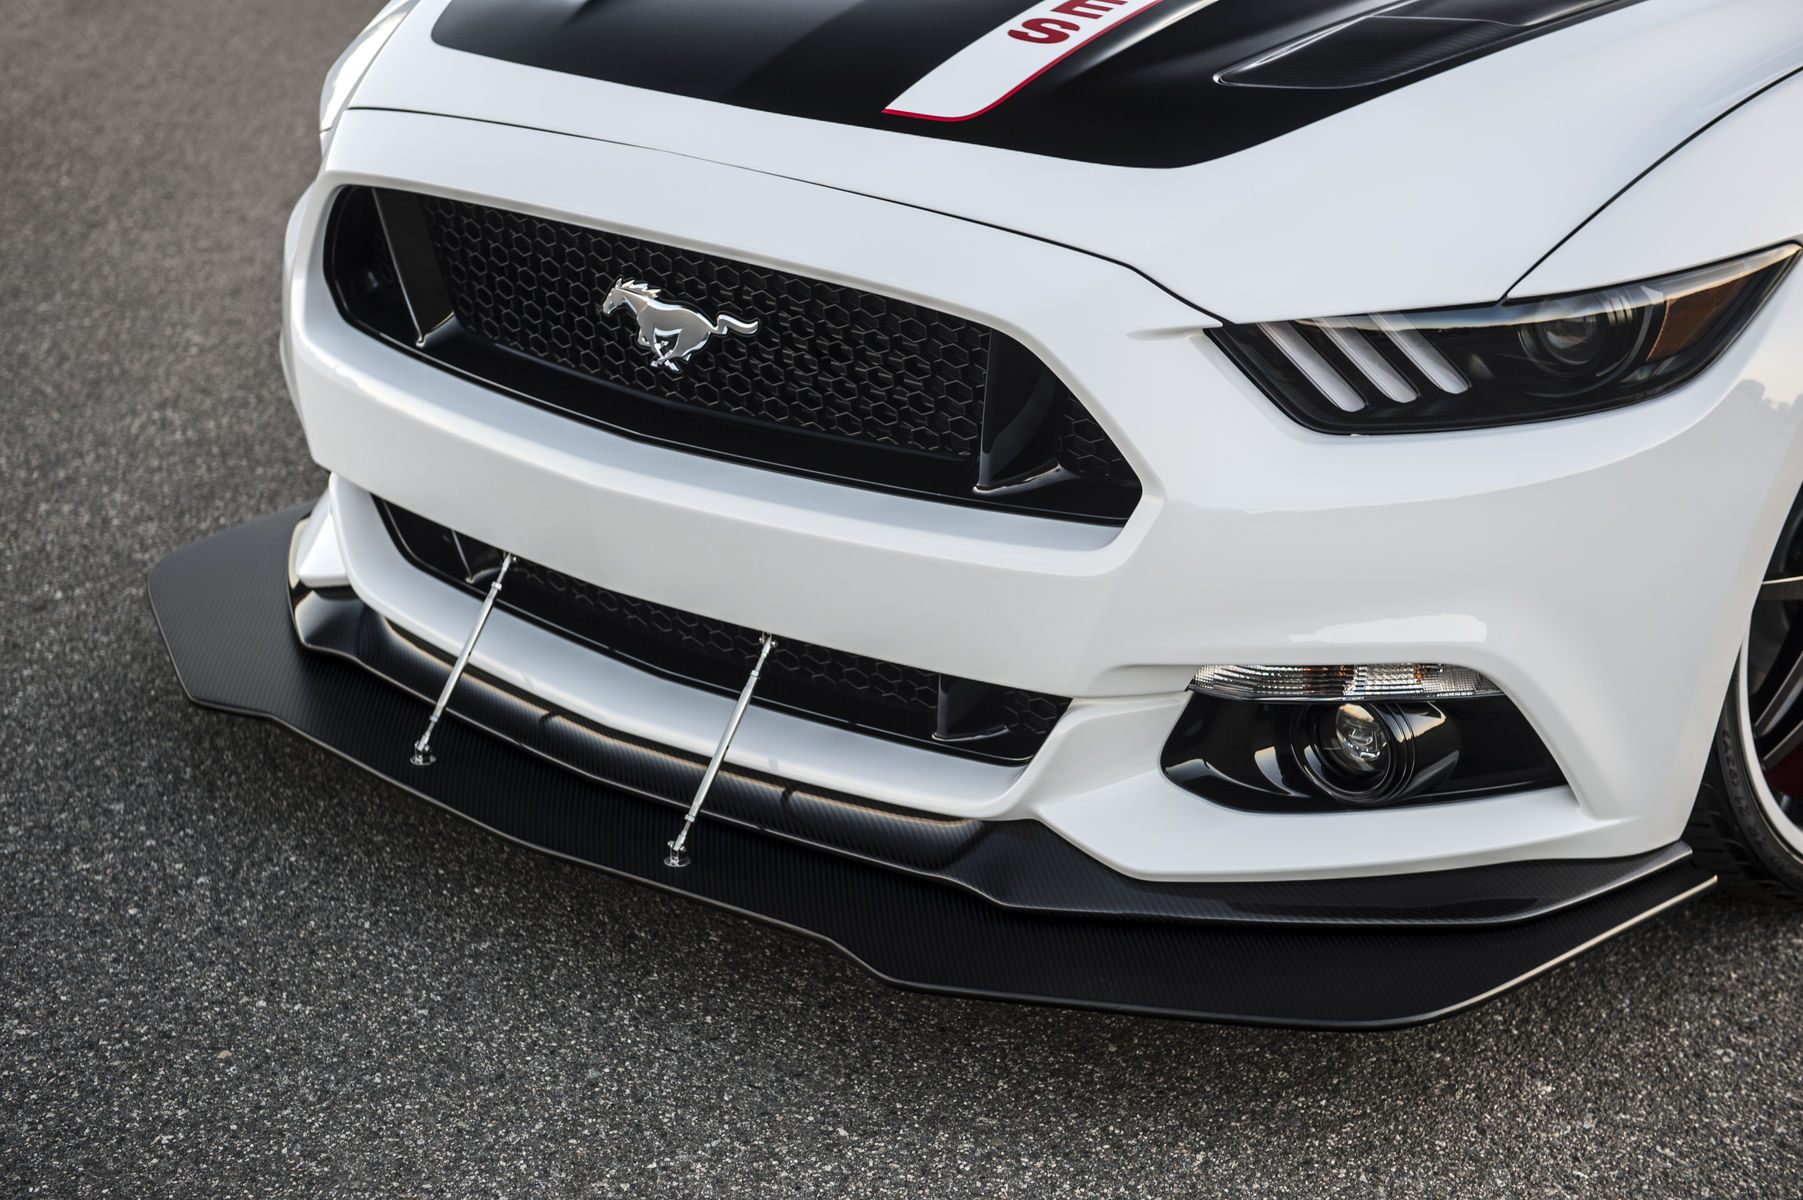 2015 Ford Mustang | Ford Mustang Apollo Edition